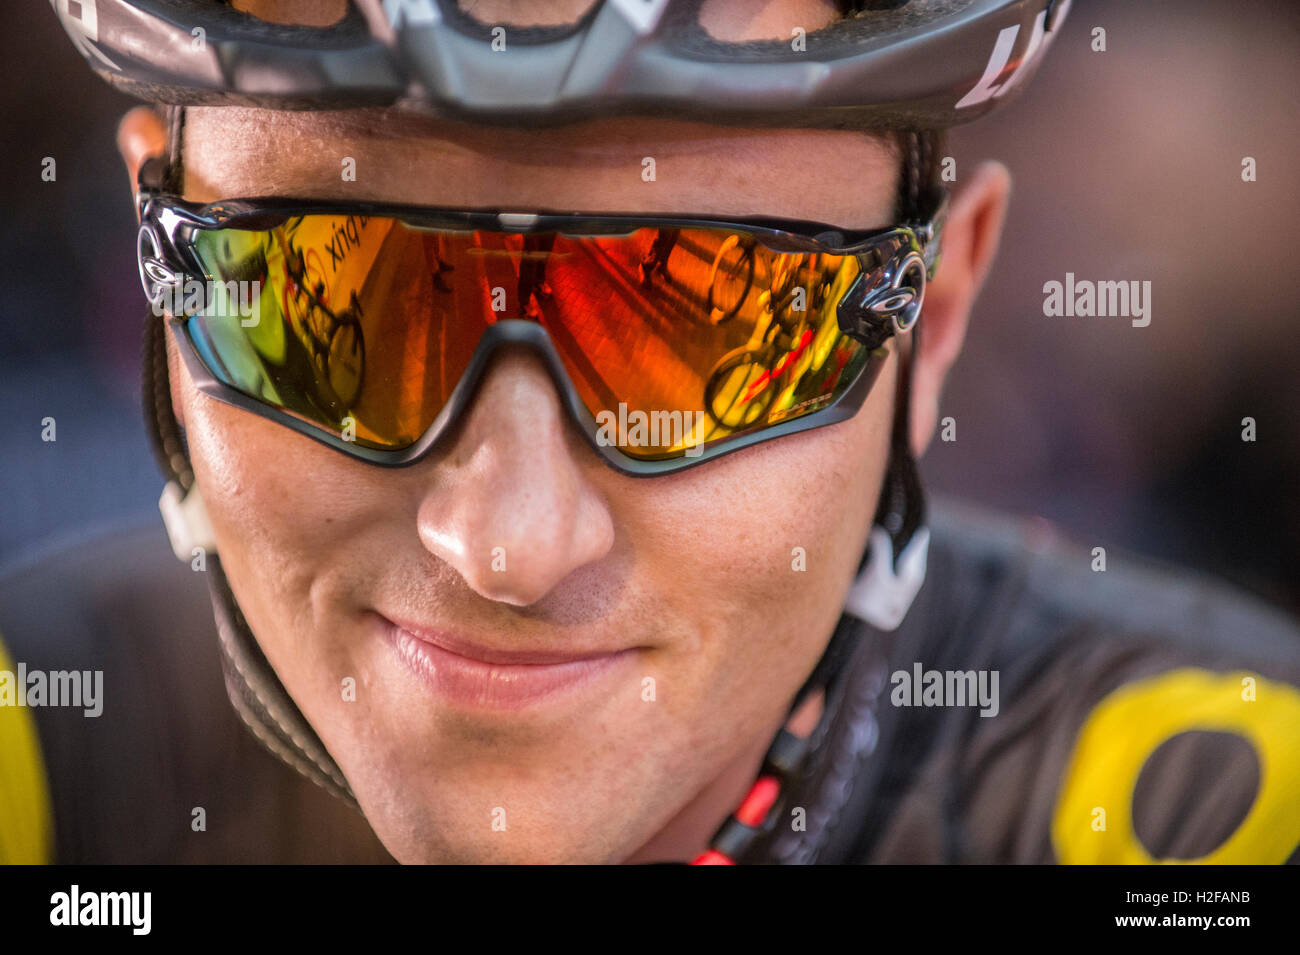 Canadian professional road racing cyclist, Ryan Anderson wearing cycling sunglasses. - Stock Image